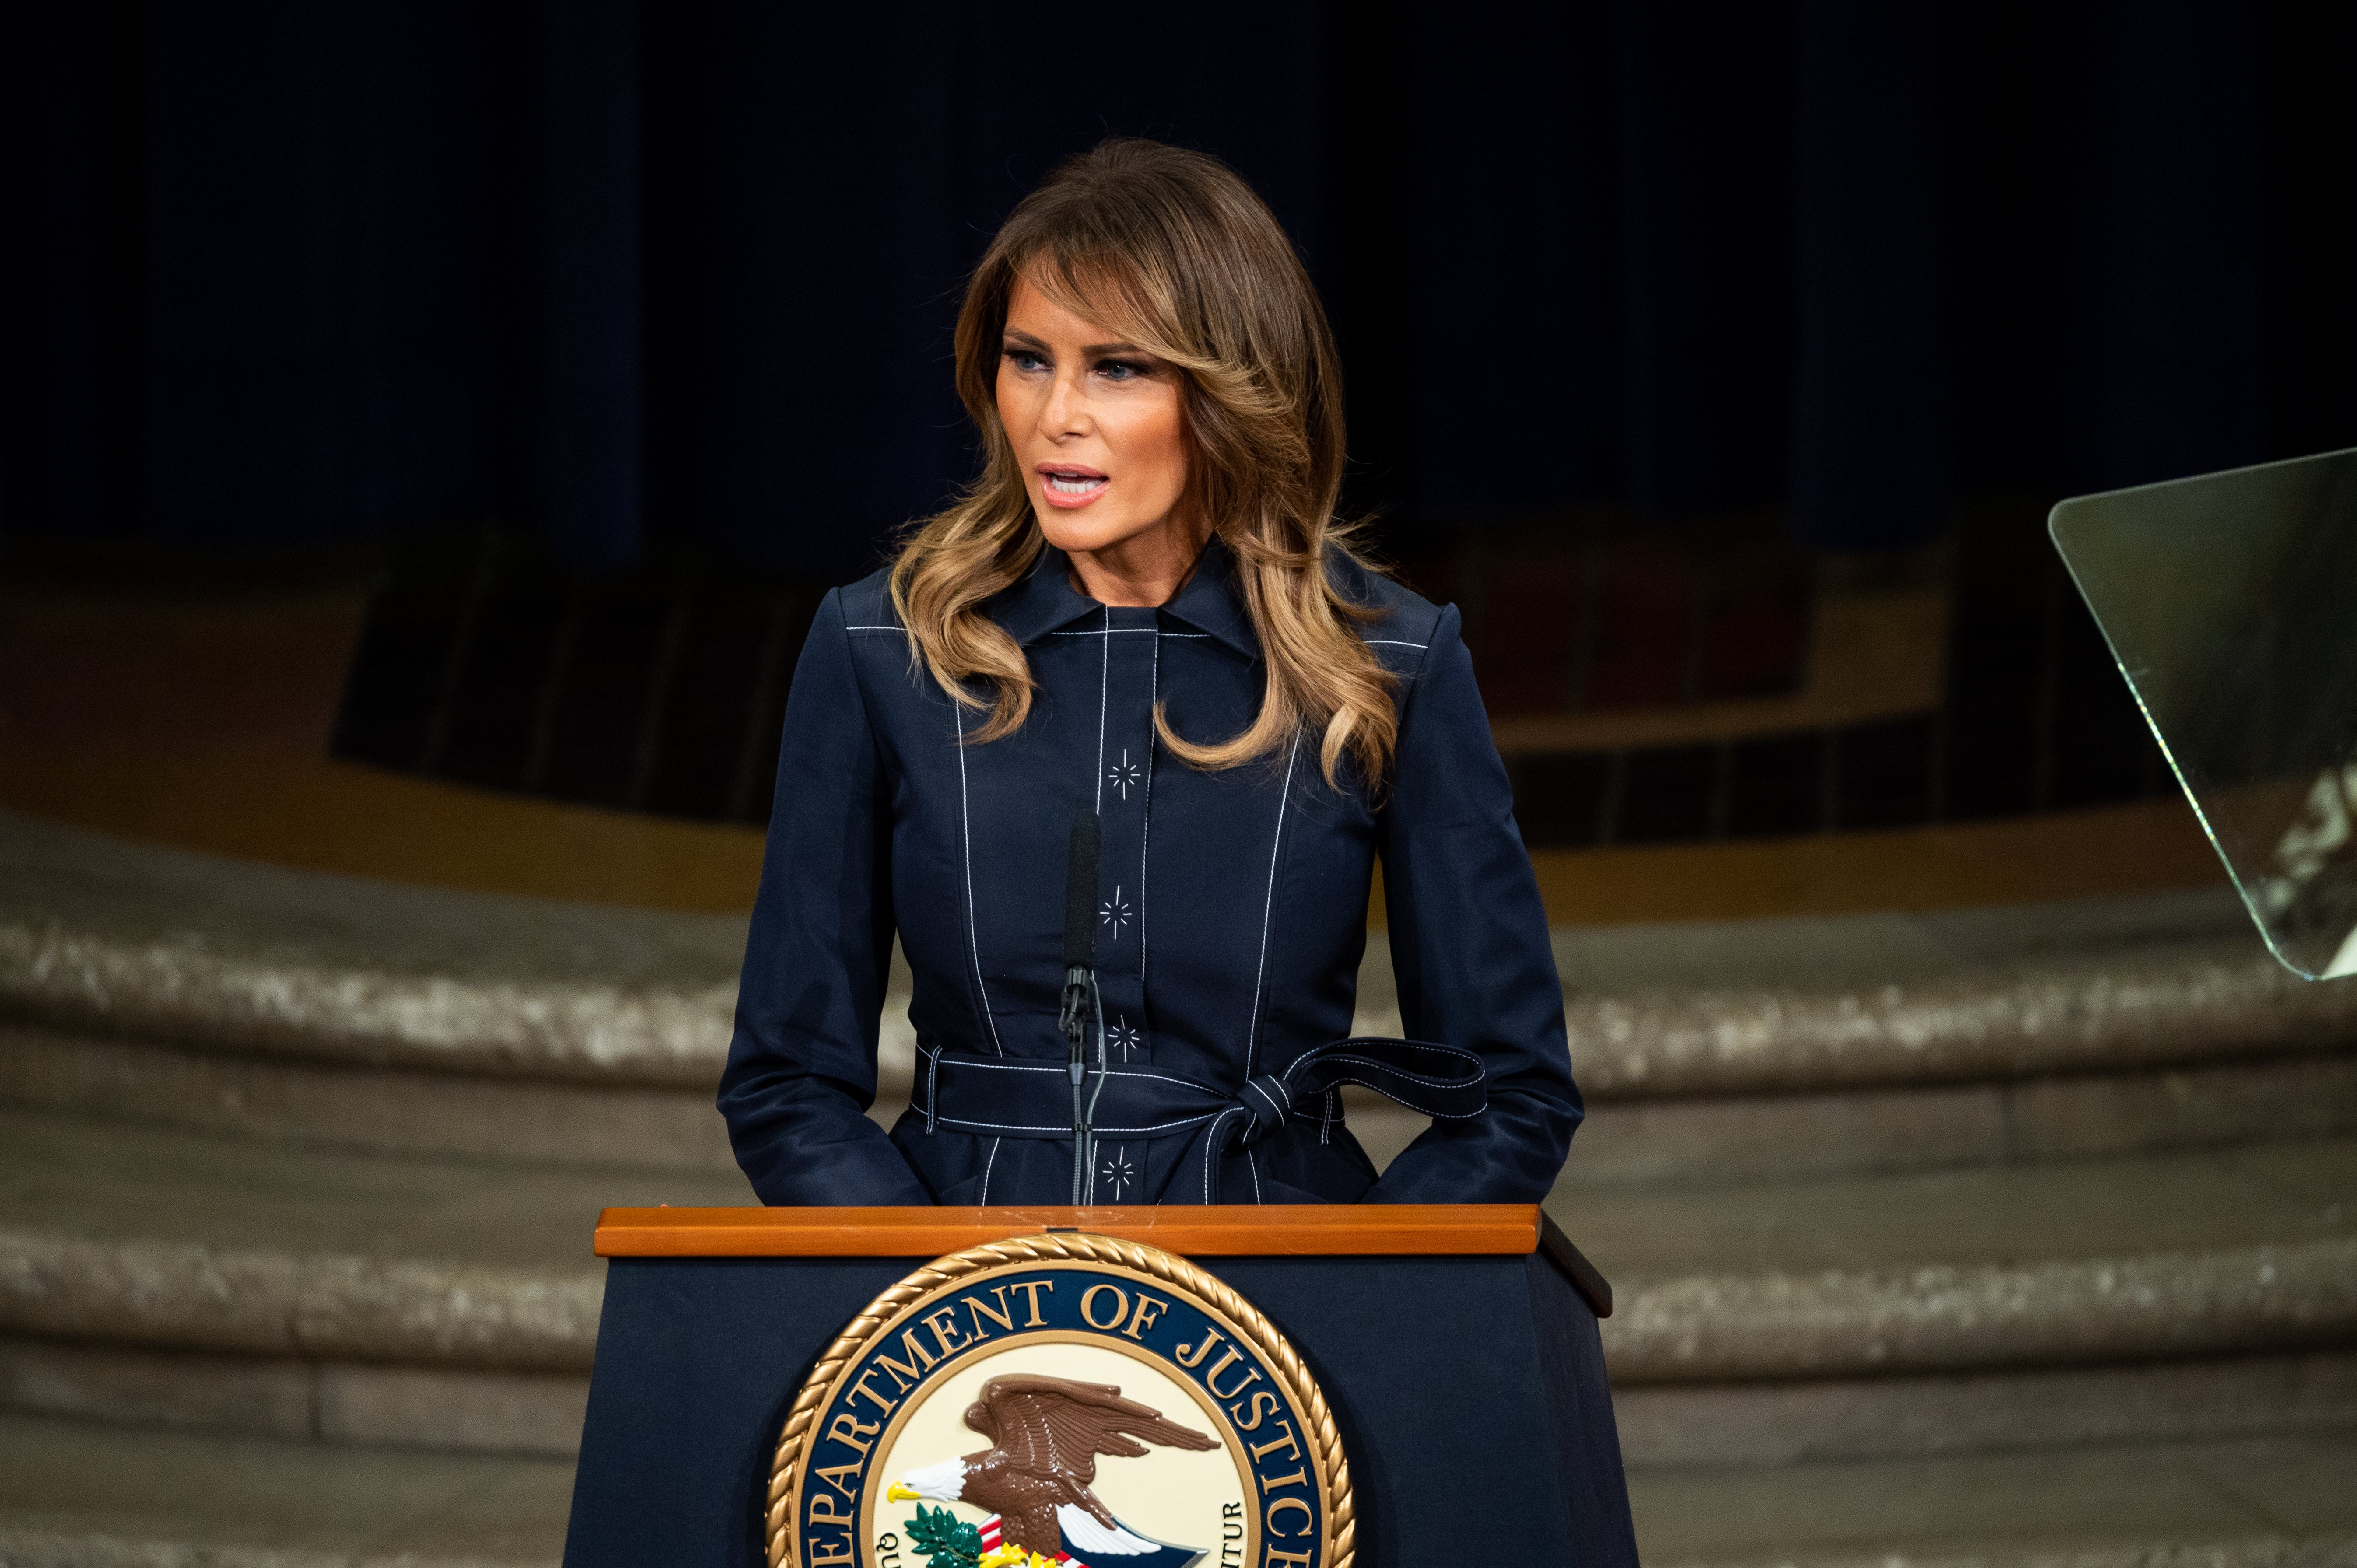 First Lady Melania Trump speaks at the Department of Justice National Opioid Summit on March 6, 2020, in Washington, DC. | Source: Getty Images.